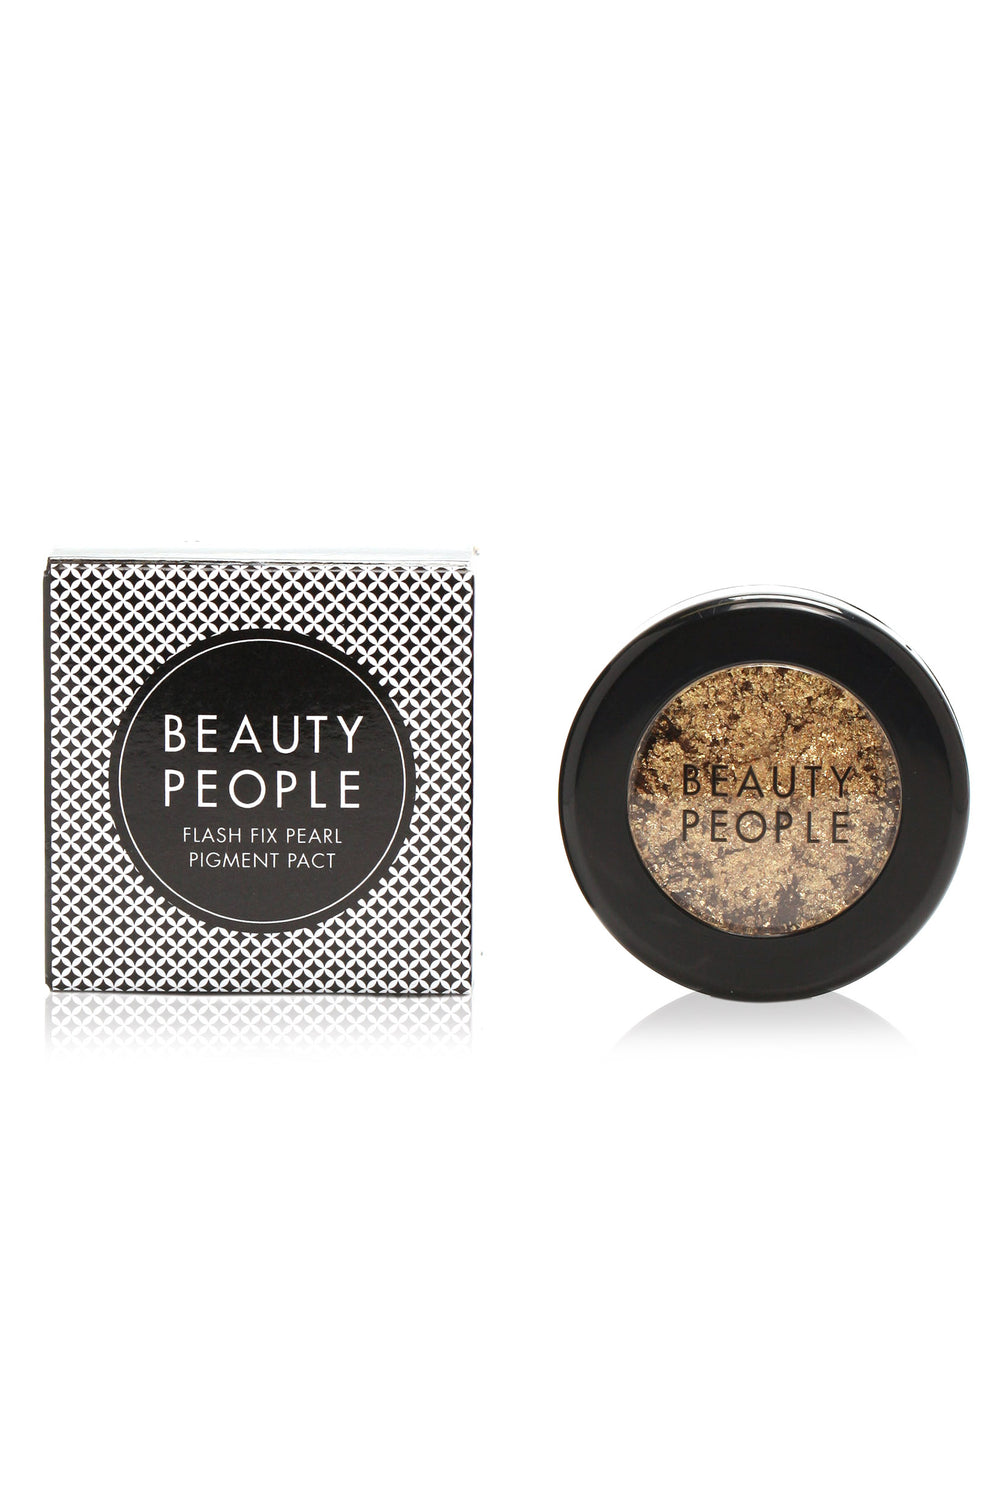 Beauty People Pearl Pigment Pact - Romantic Light